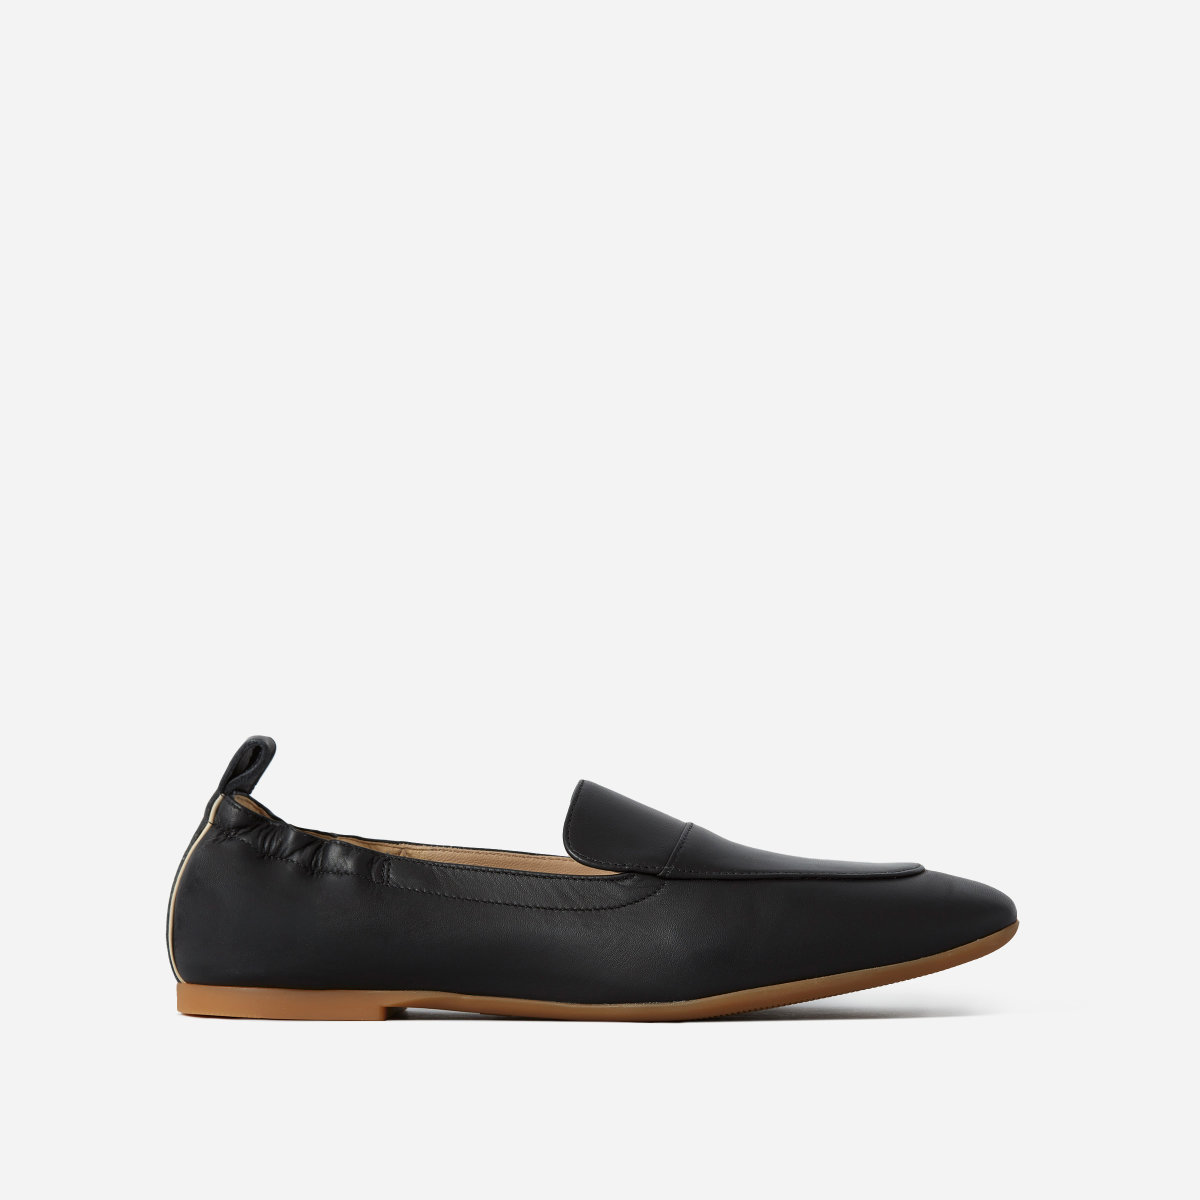 879130c1921 The Day Loafer